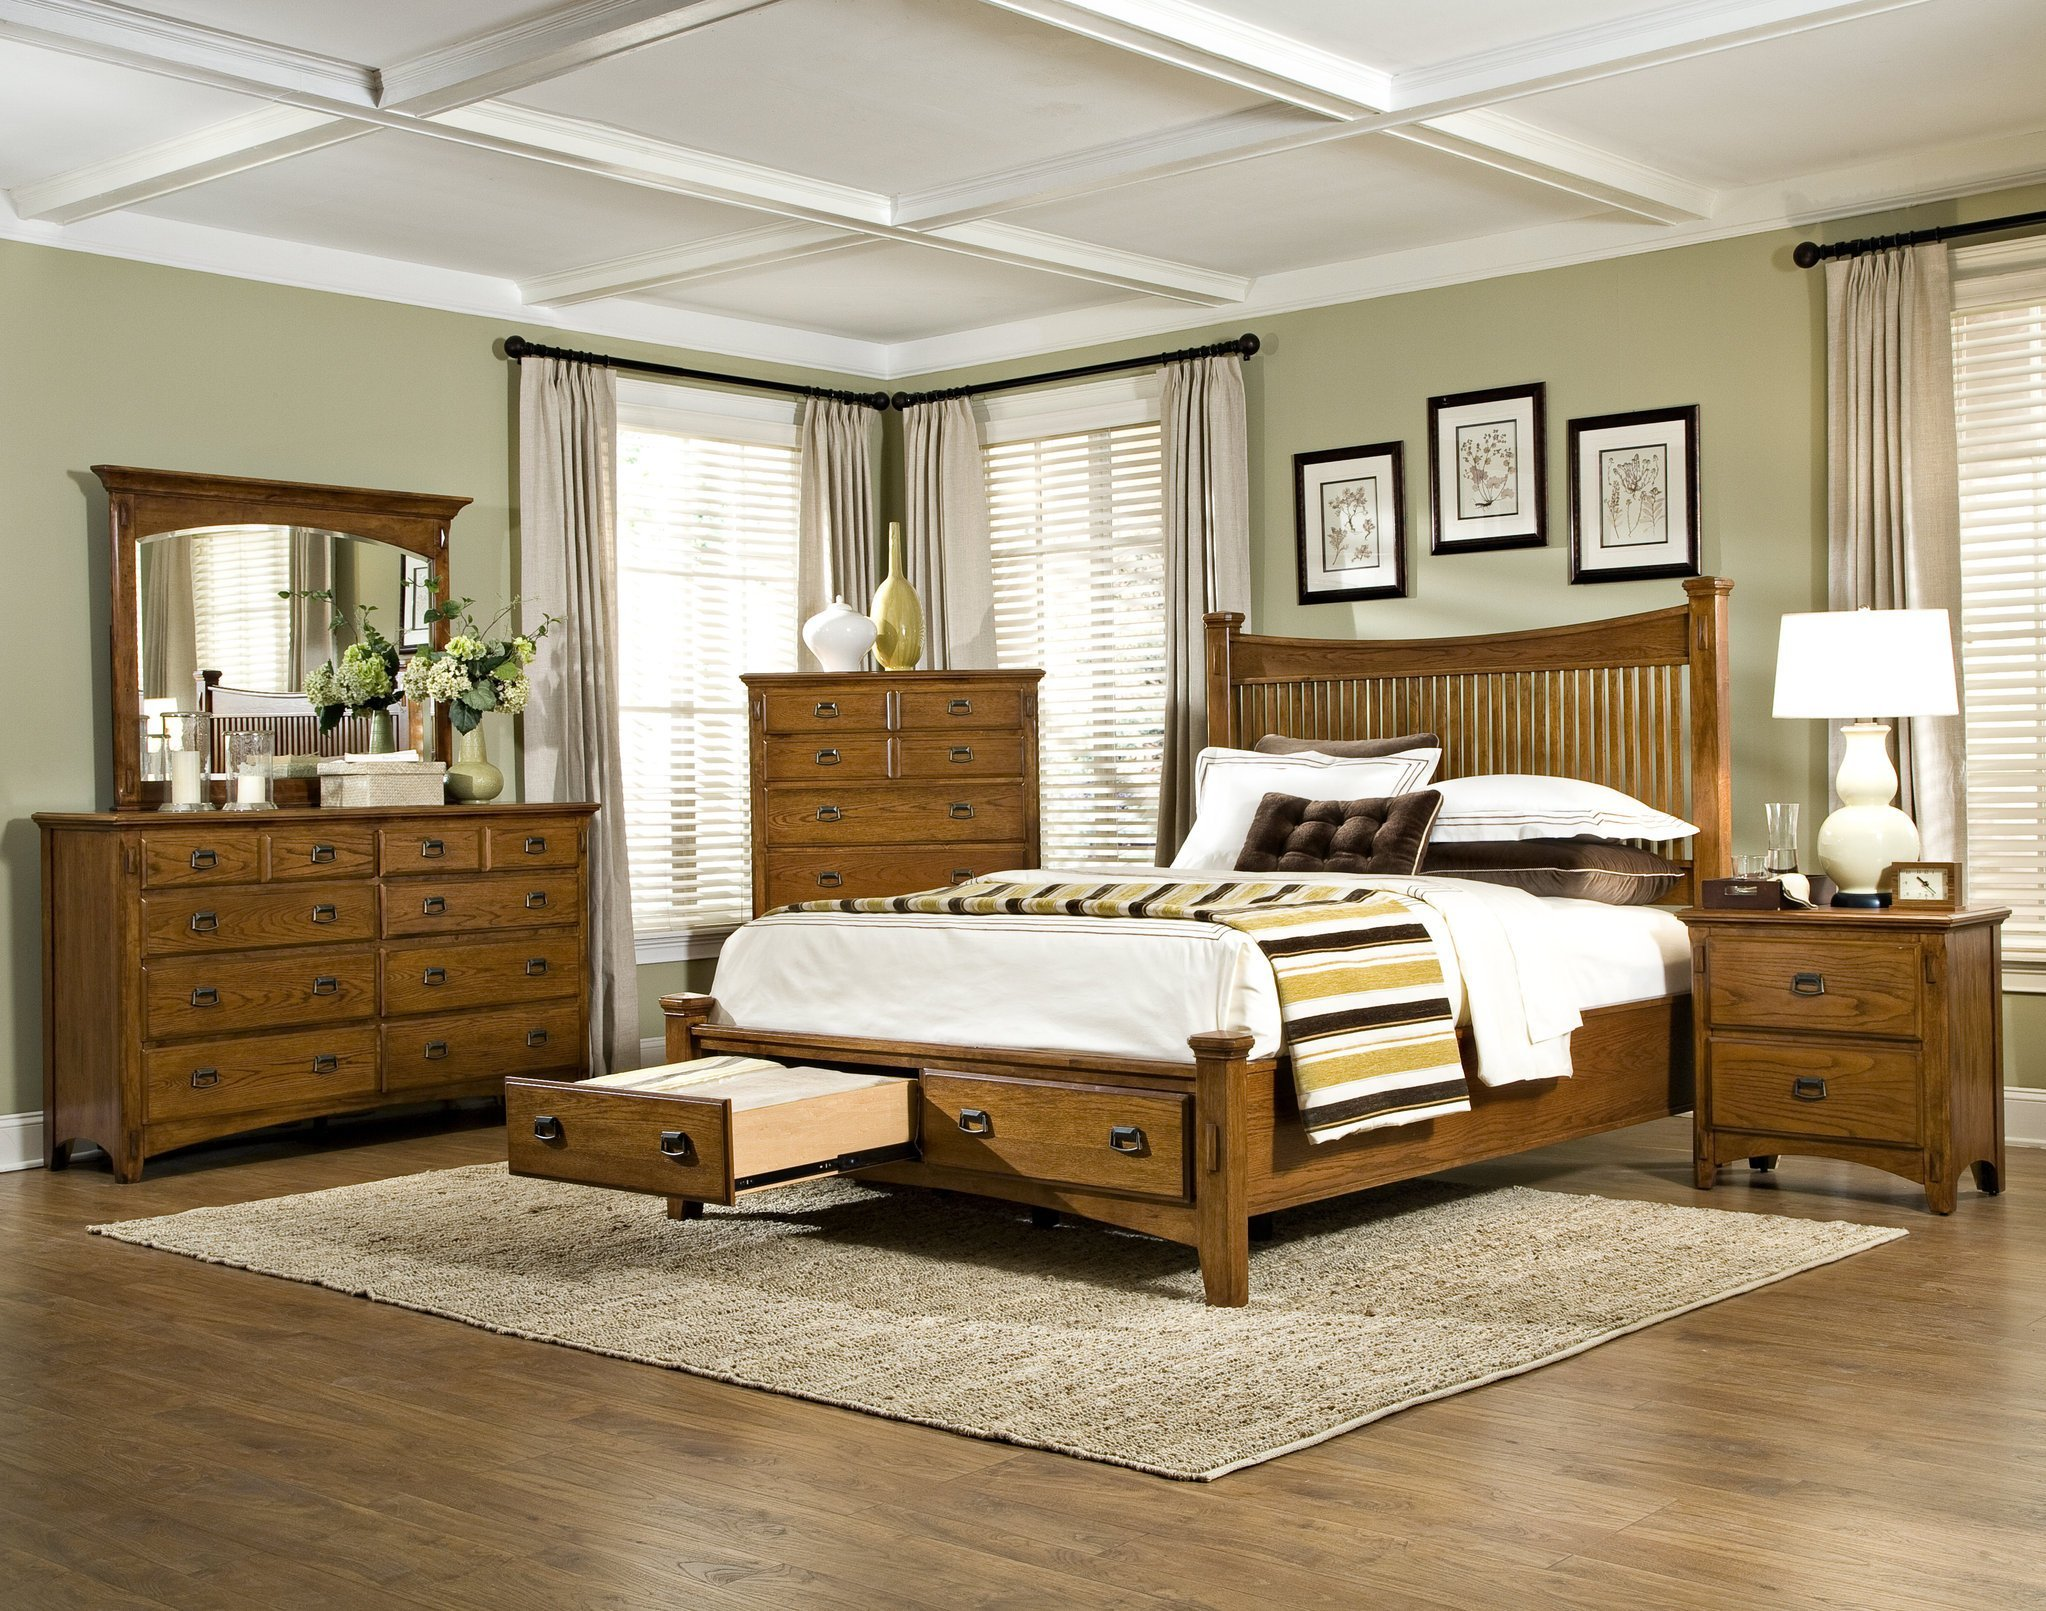 Best The Pasadena Revival Storage Bedroom Collection Bedroom With Pictures